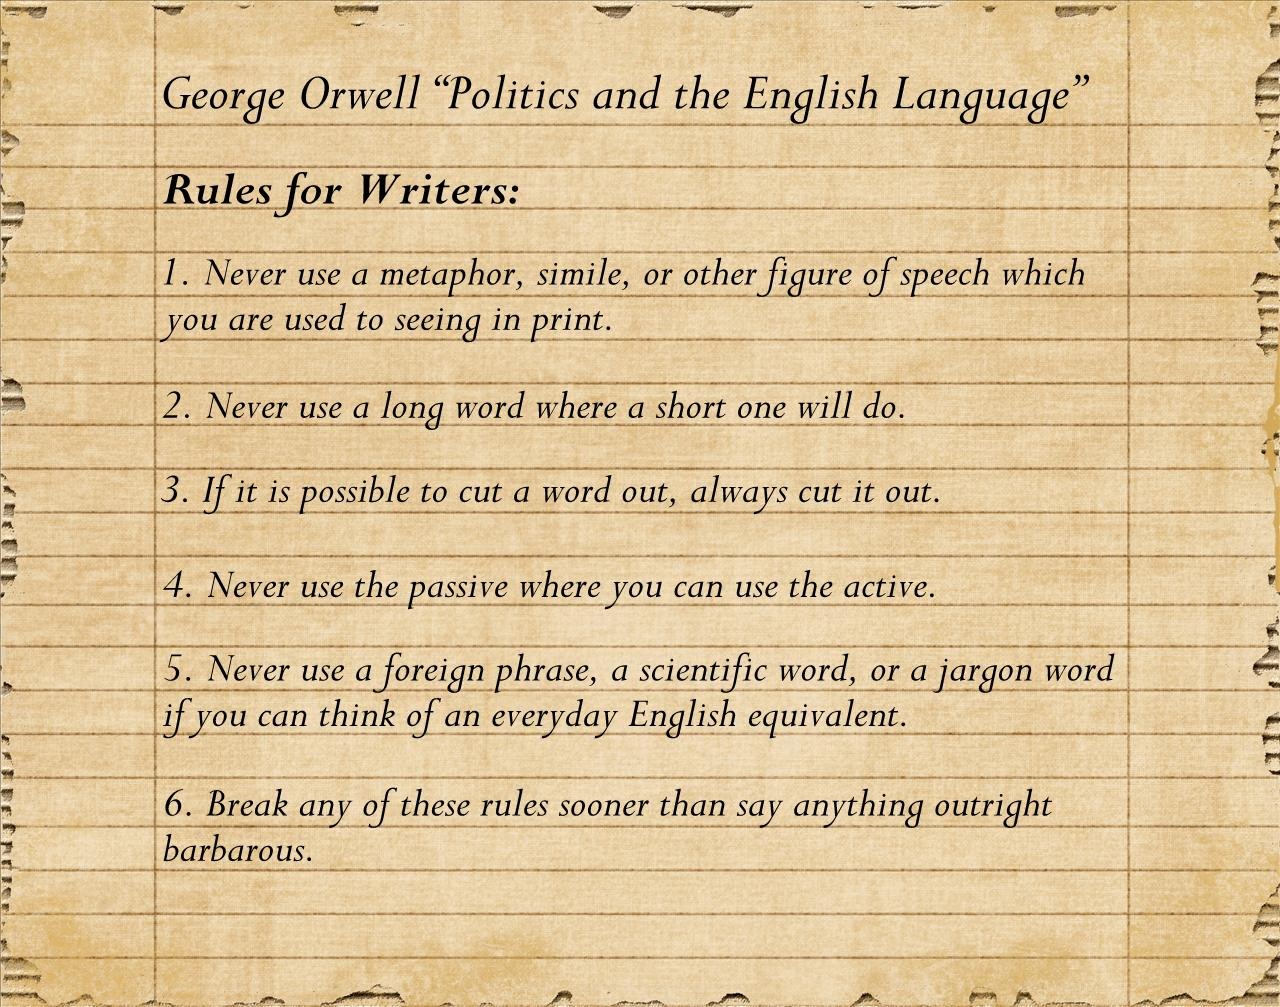 Biography of George Orwell